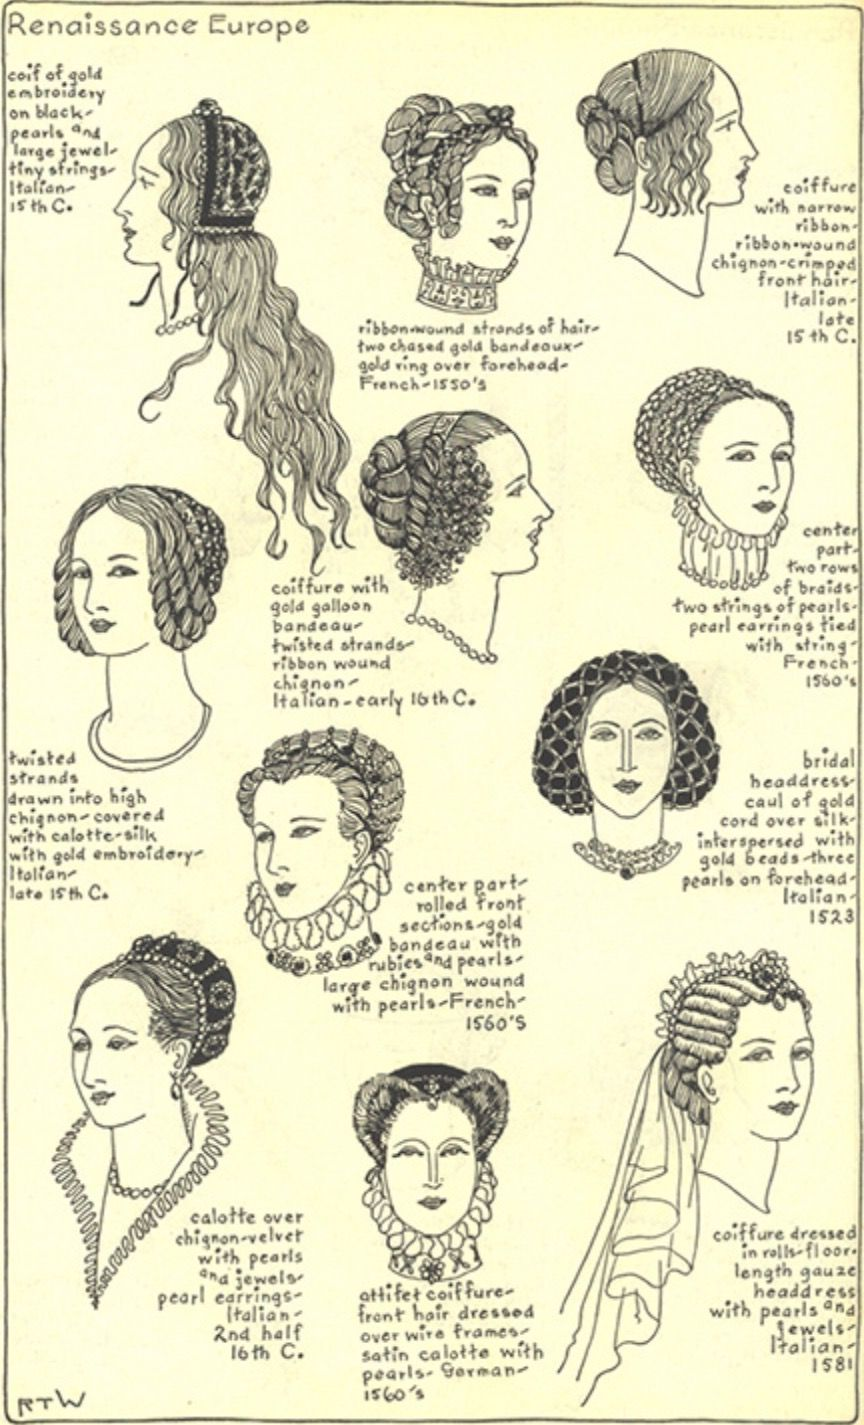 Renaissance Hairstyles For Women Weren T How We Normally Would Wear Them Today After Doing Further Resea Victorian Hats Renaissance Hairstyles Historical Hats